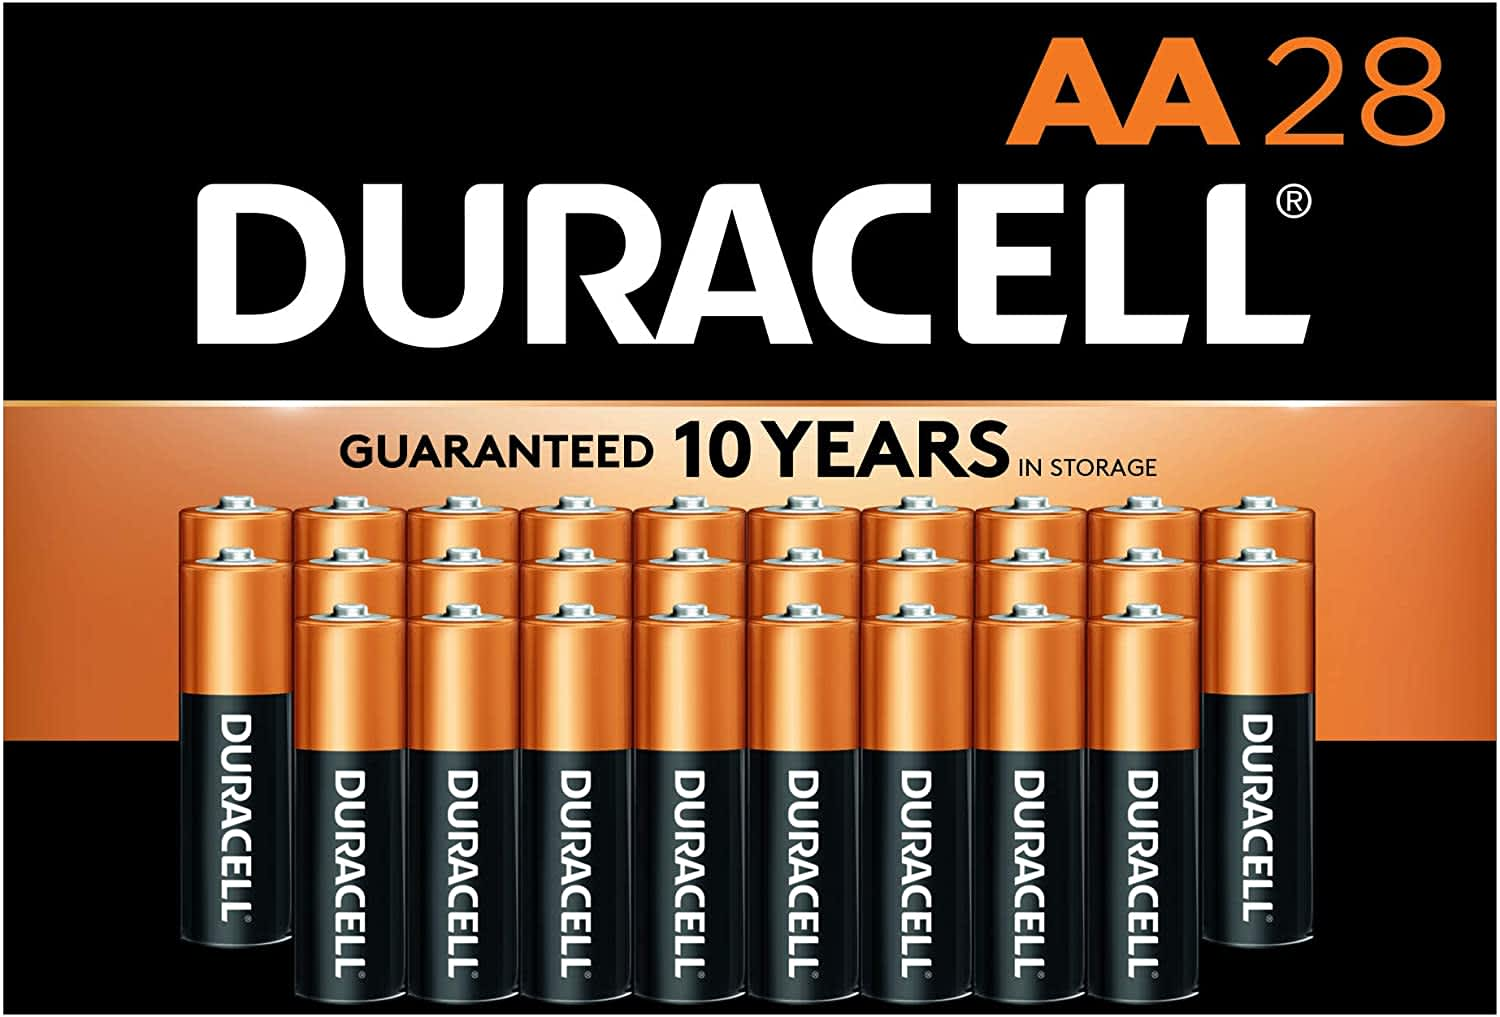 Duracell CopperTop AA Alkaline Batteries 28-Pack